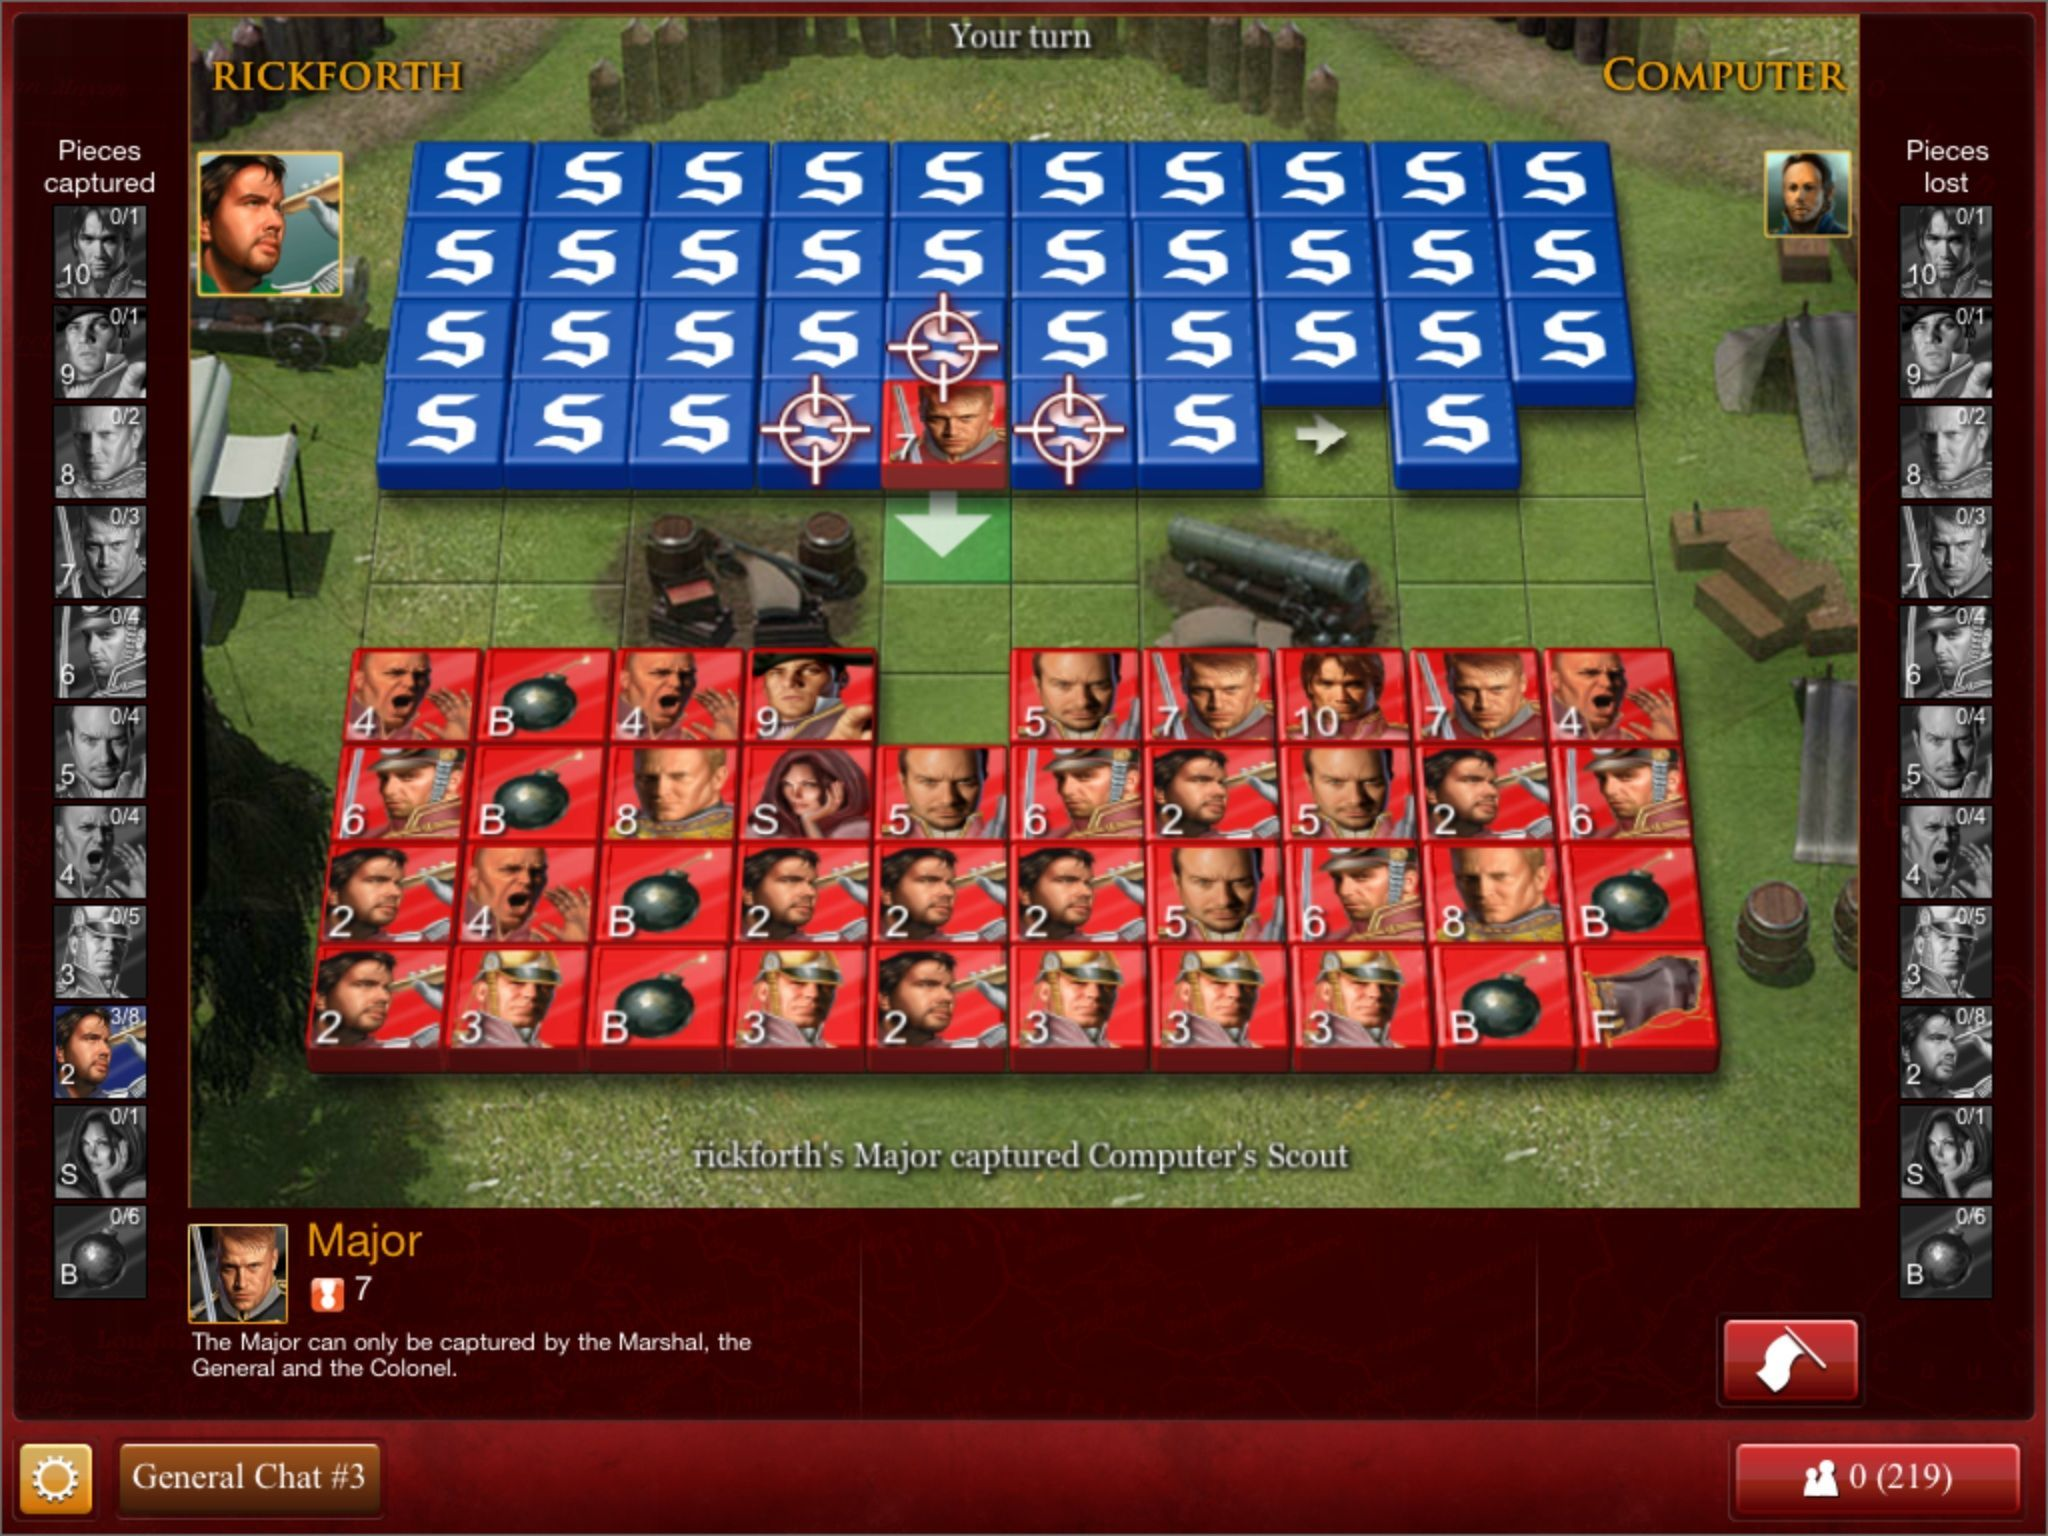 Stratego for iPad lets you play against the computer or any number of online opponents, including those on the Web and Facebook.